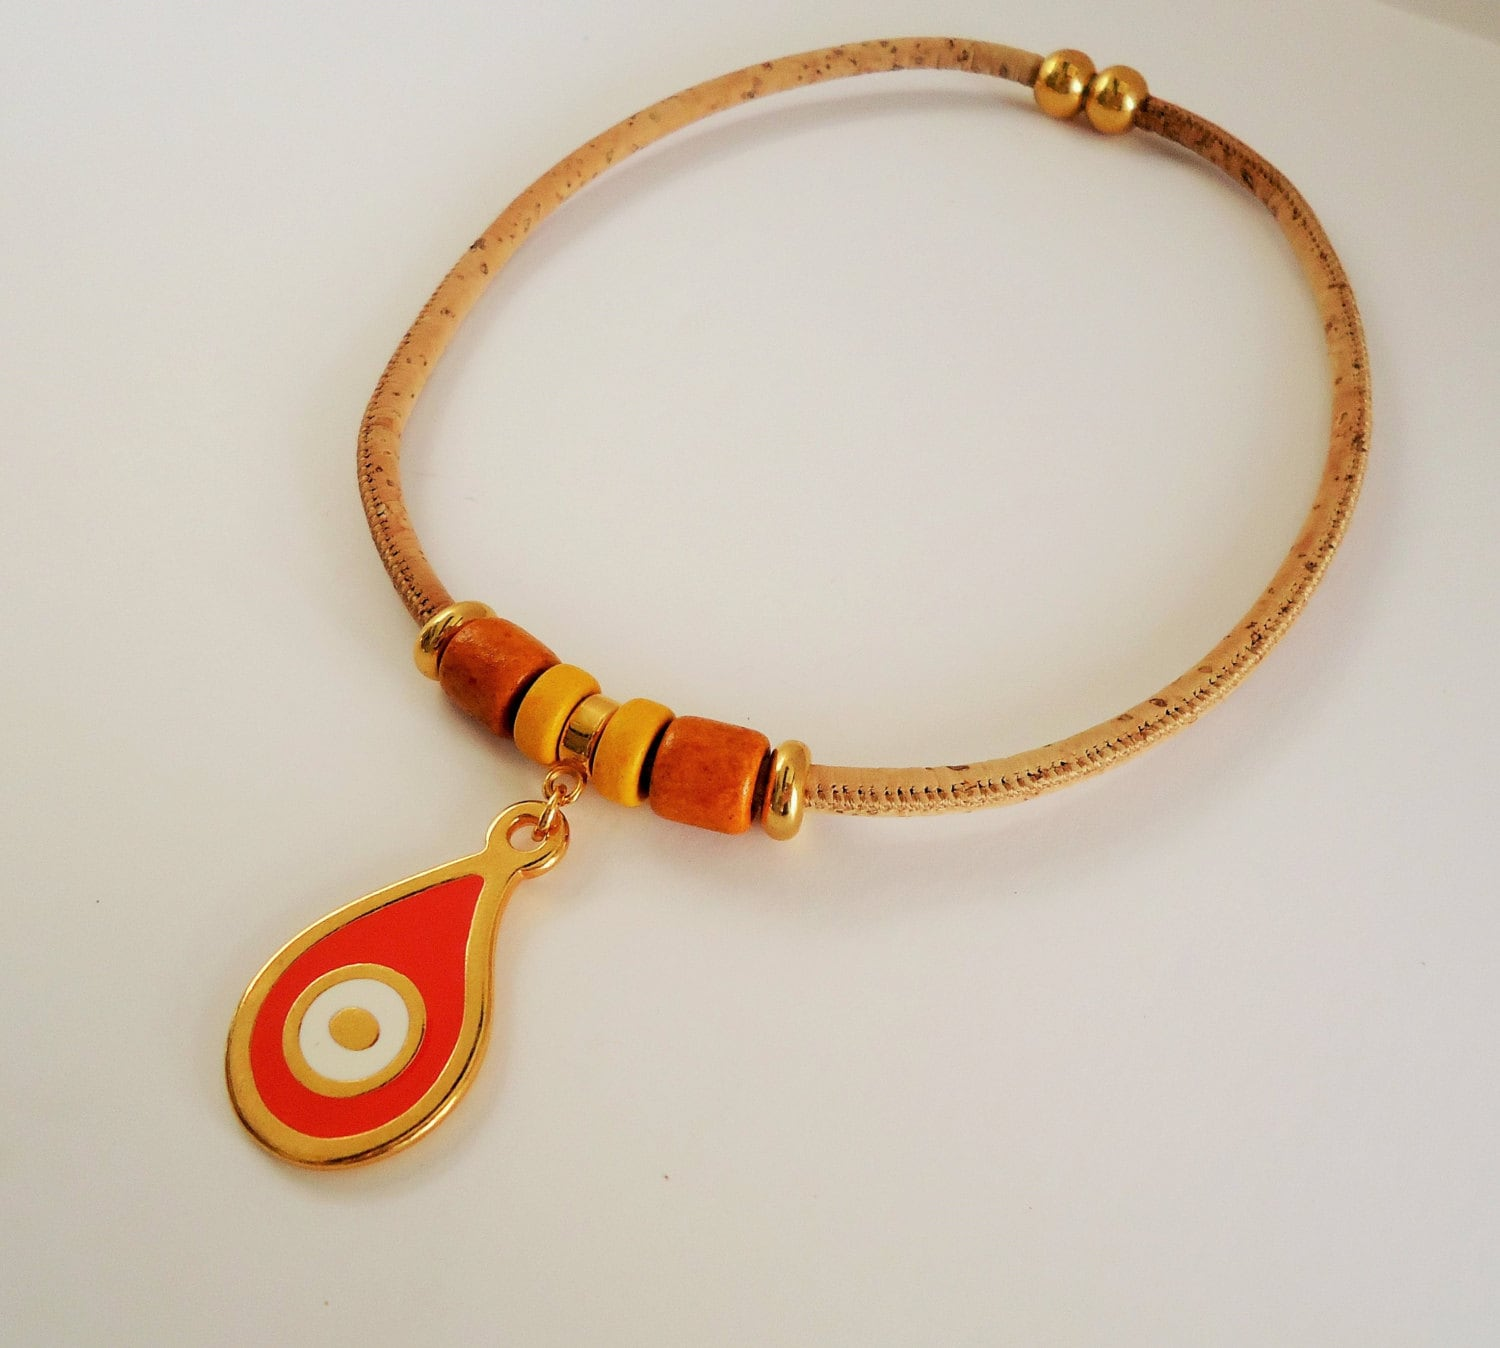 Cork Beads: Rope Necklace Natural Cork Necklace Εco Friendly Jewelry